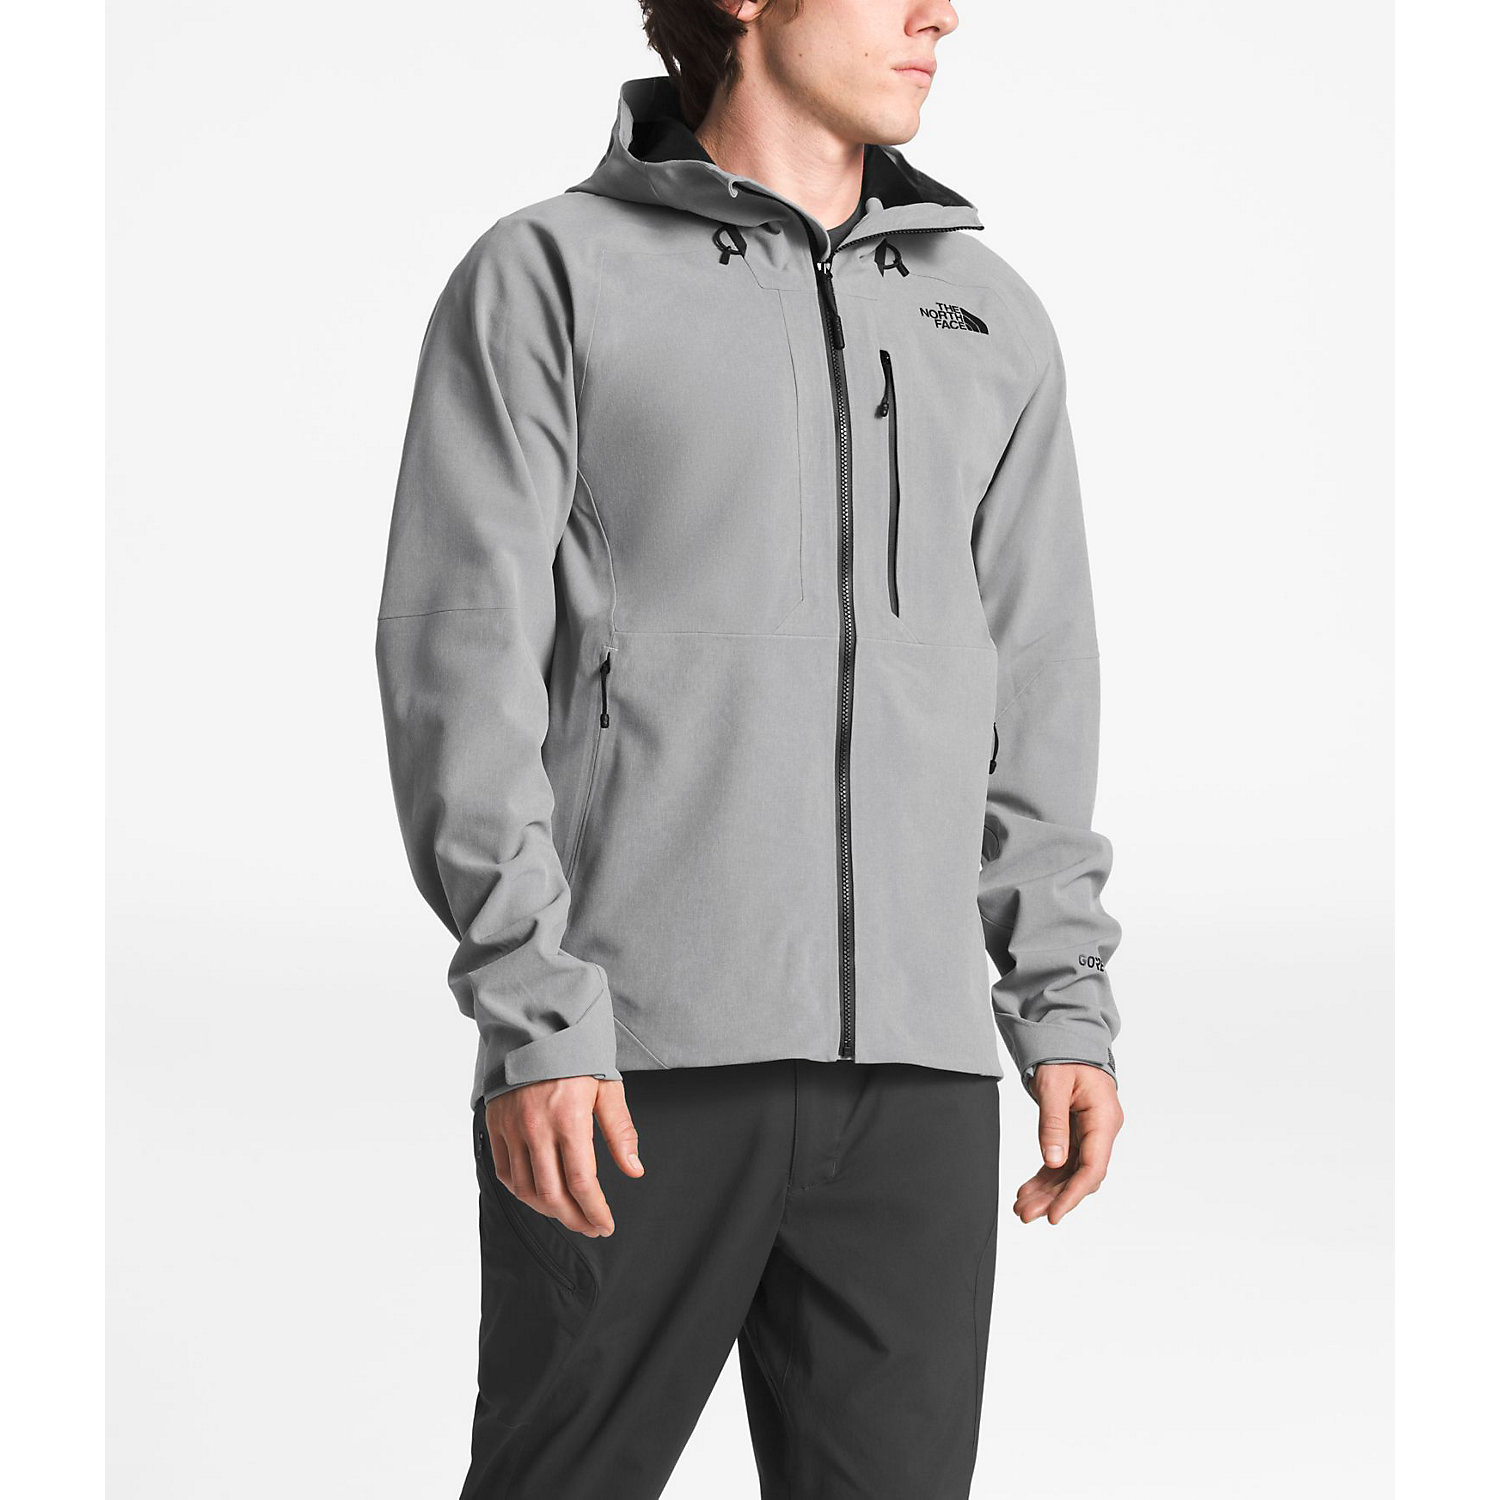 52f973e2 The North Face Men's Apex Flex GTX 2.0 Jacket - Moosejaw